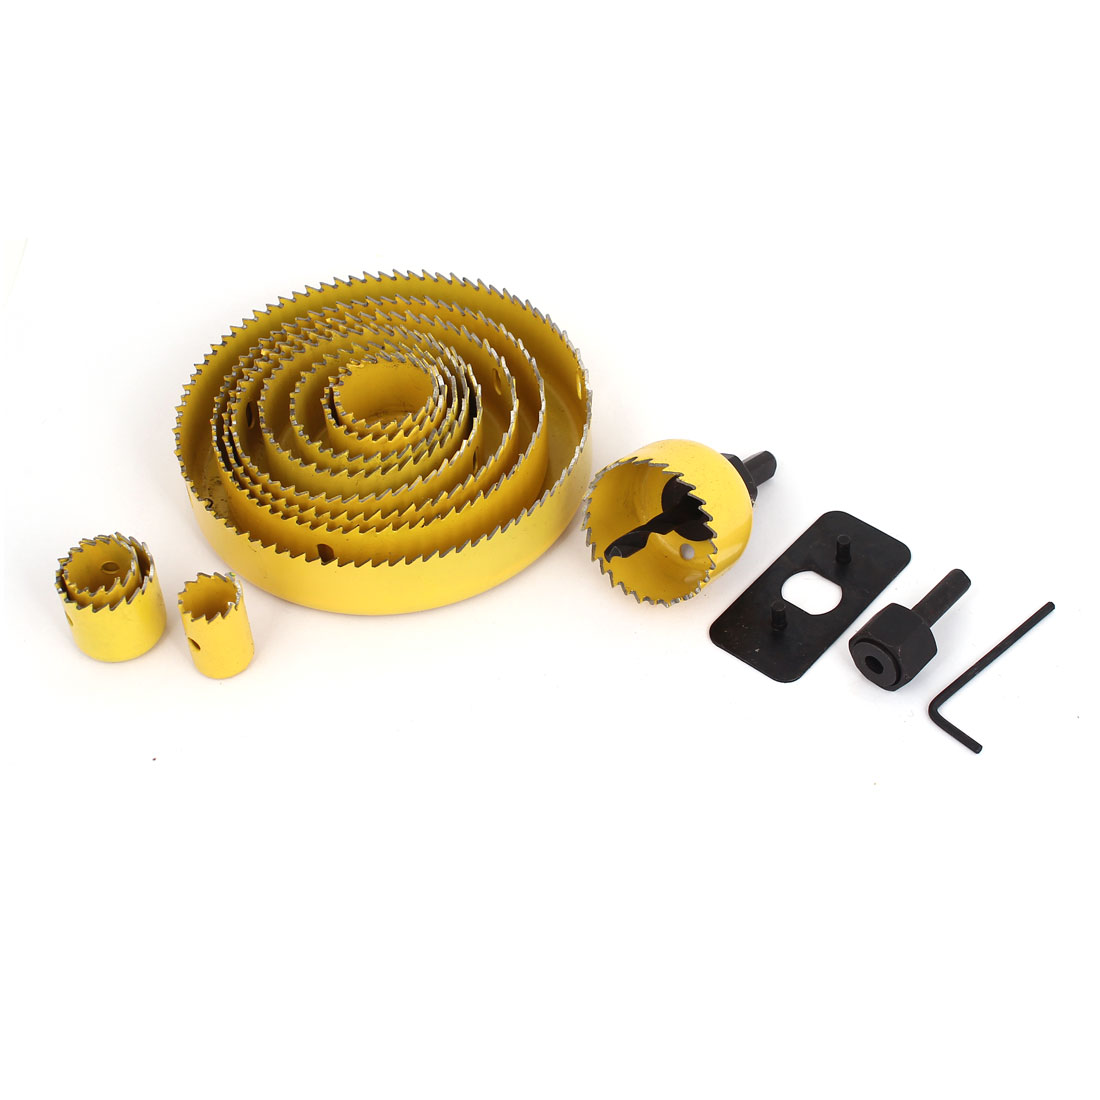 3/4 - 5 Inch Cut Dia Carbon Steel Drill Bit Hole Saw Set Kit 16 in 1 Yellow